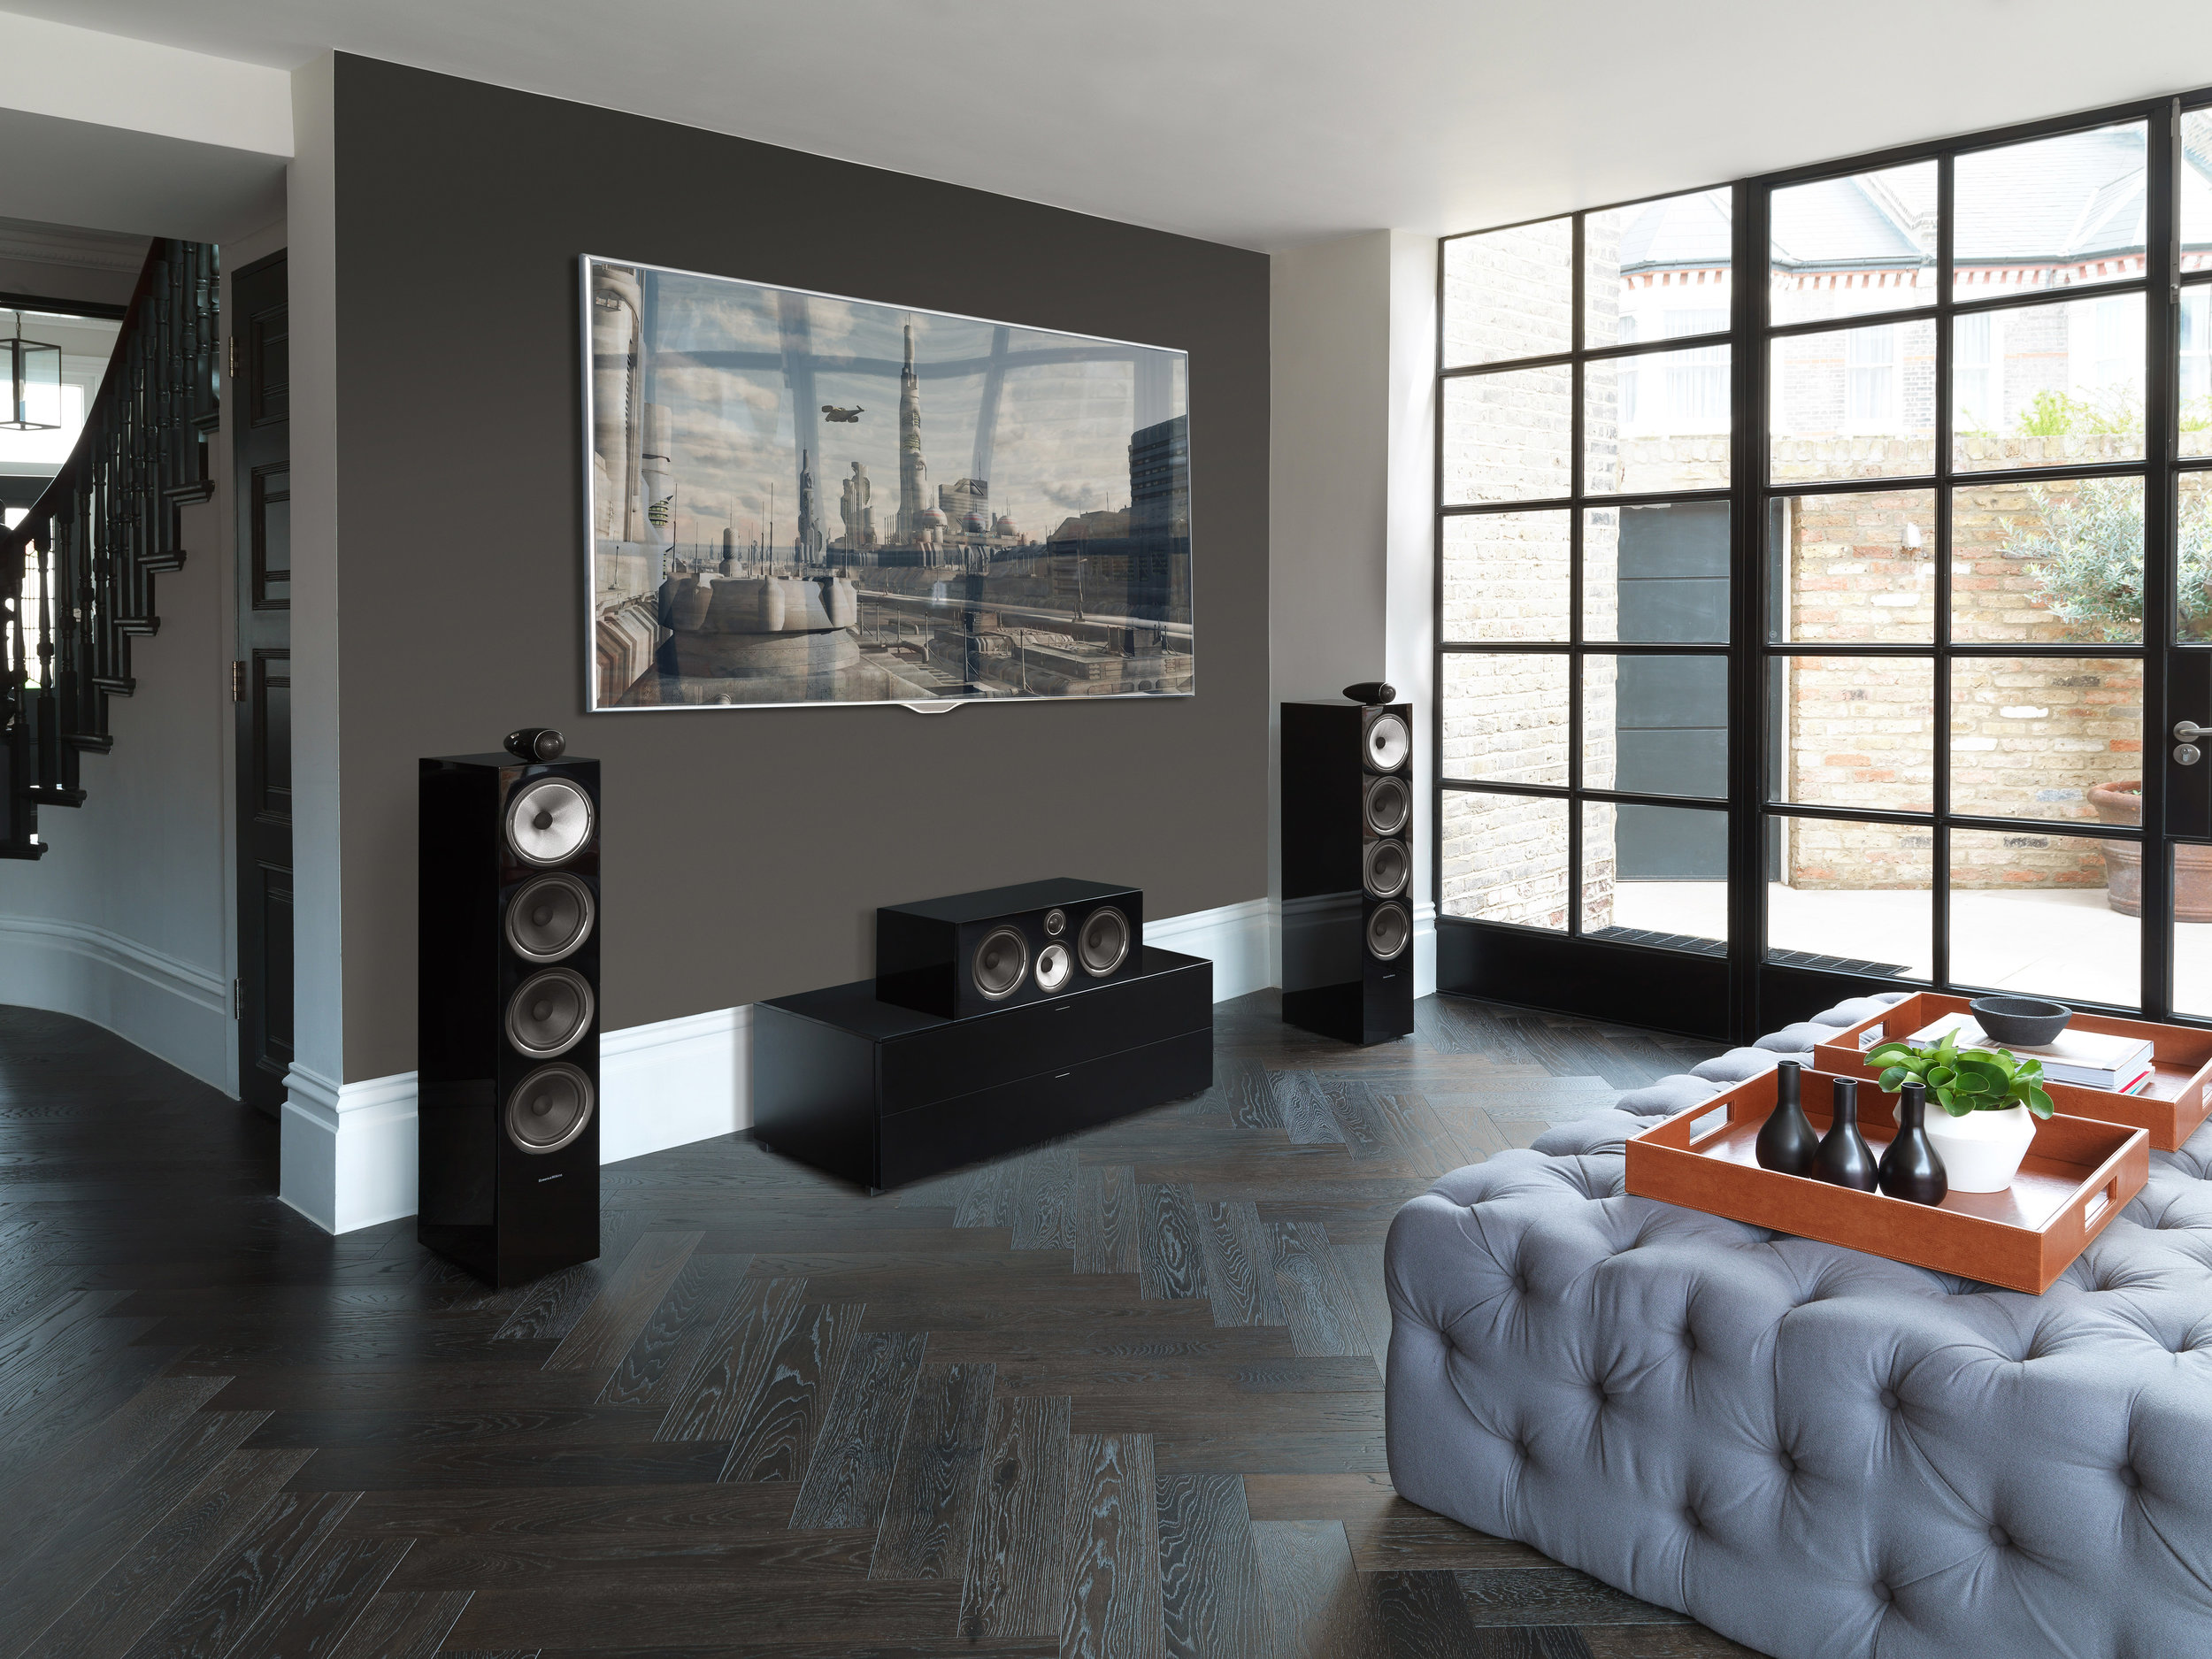 Bowers & WIlkins 702 S2 and HTM 71 S2